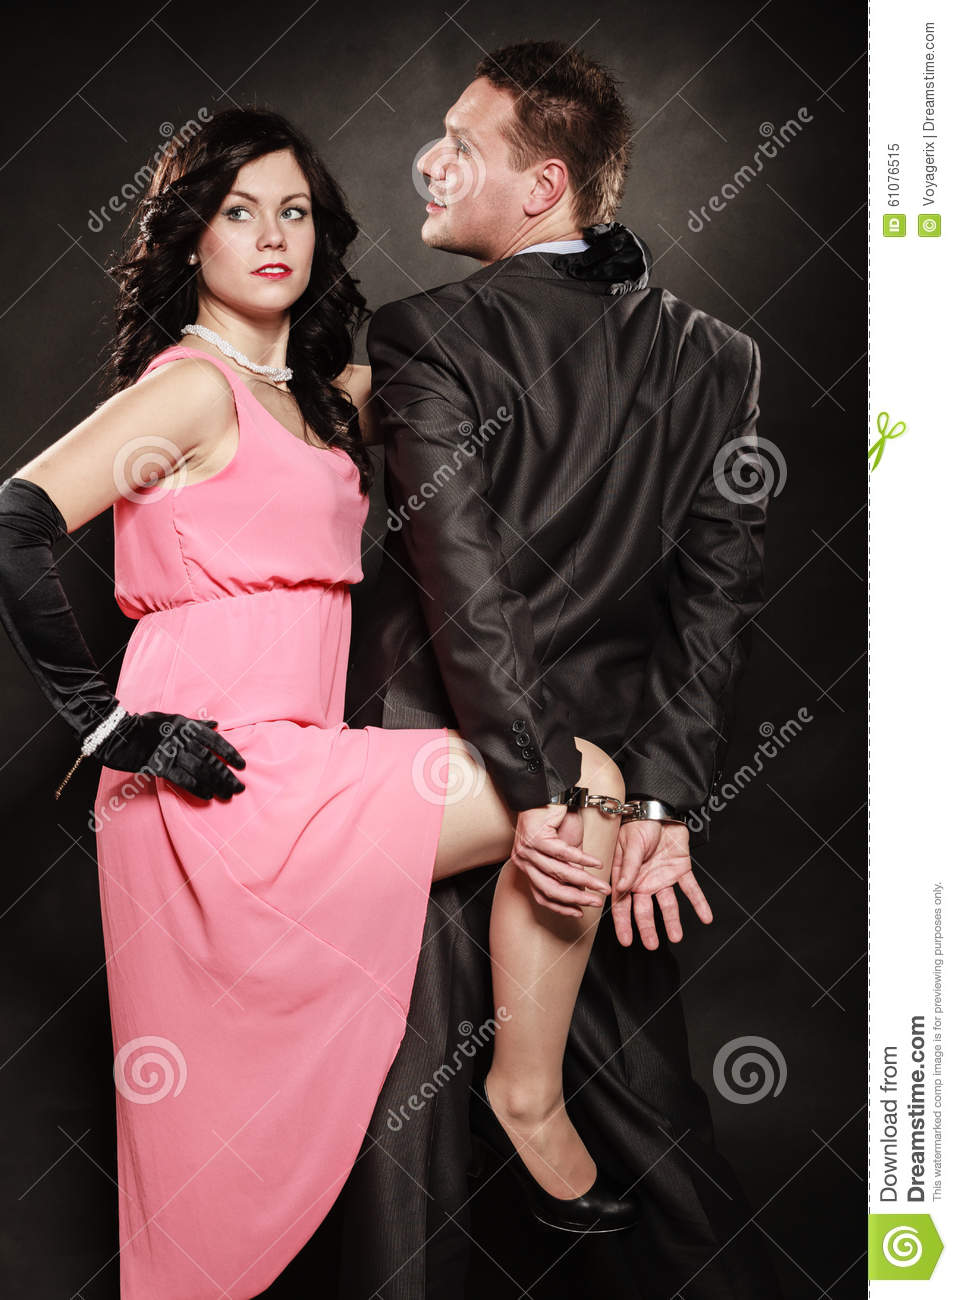 Man In Handcuffs And Woman Detective Spy. Stock Image - Image of ...